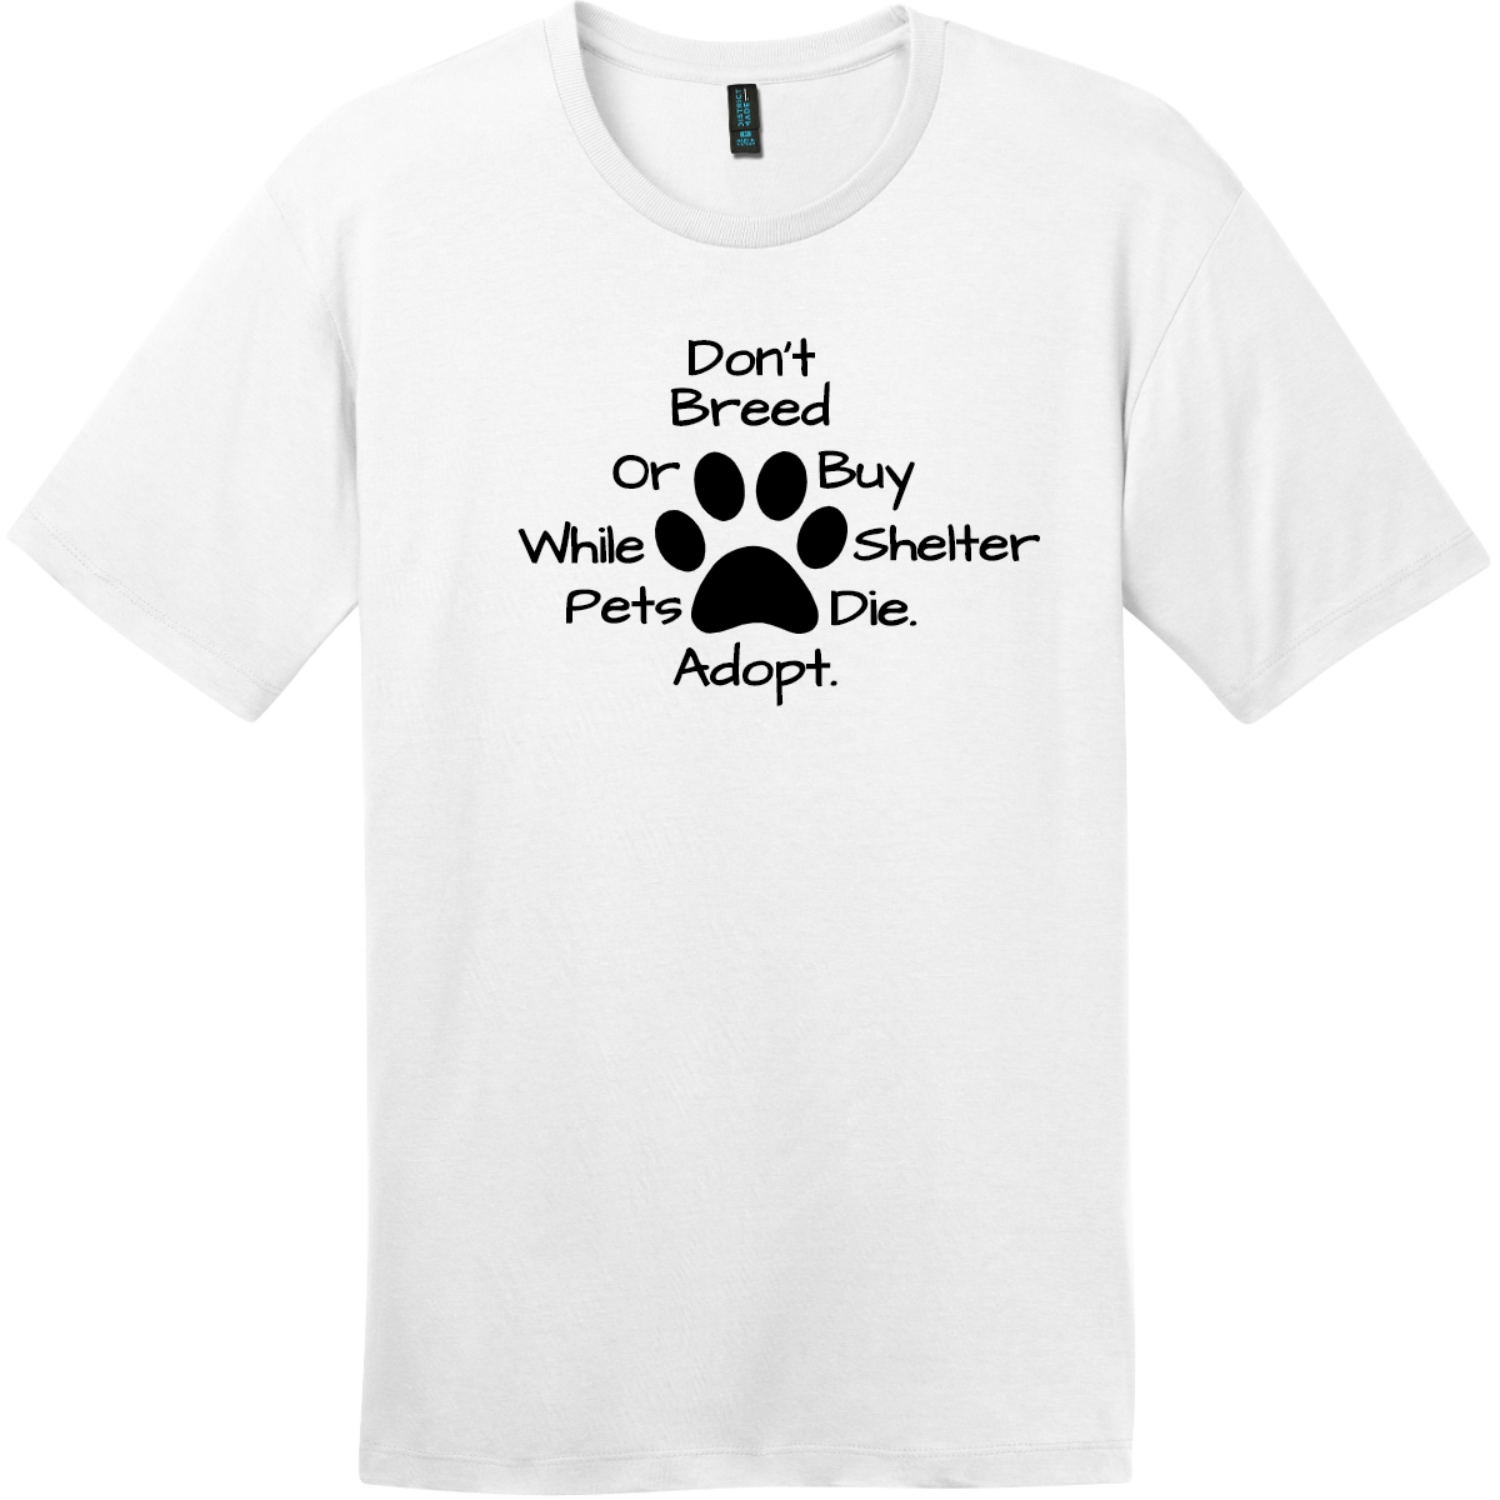 Don't Breed Or Buy While Shelter Pets Die T-Shirt Bright White District Perfect Weight Tee DT104